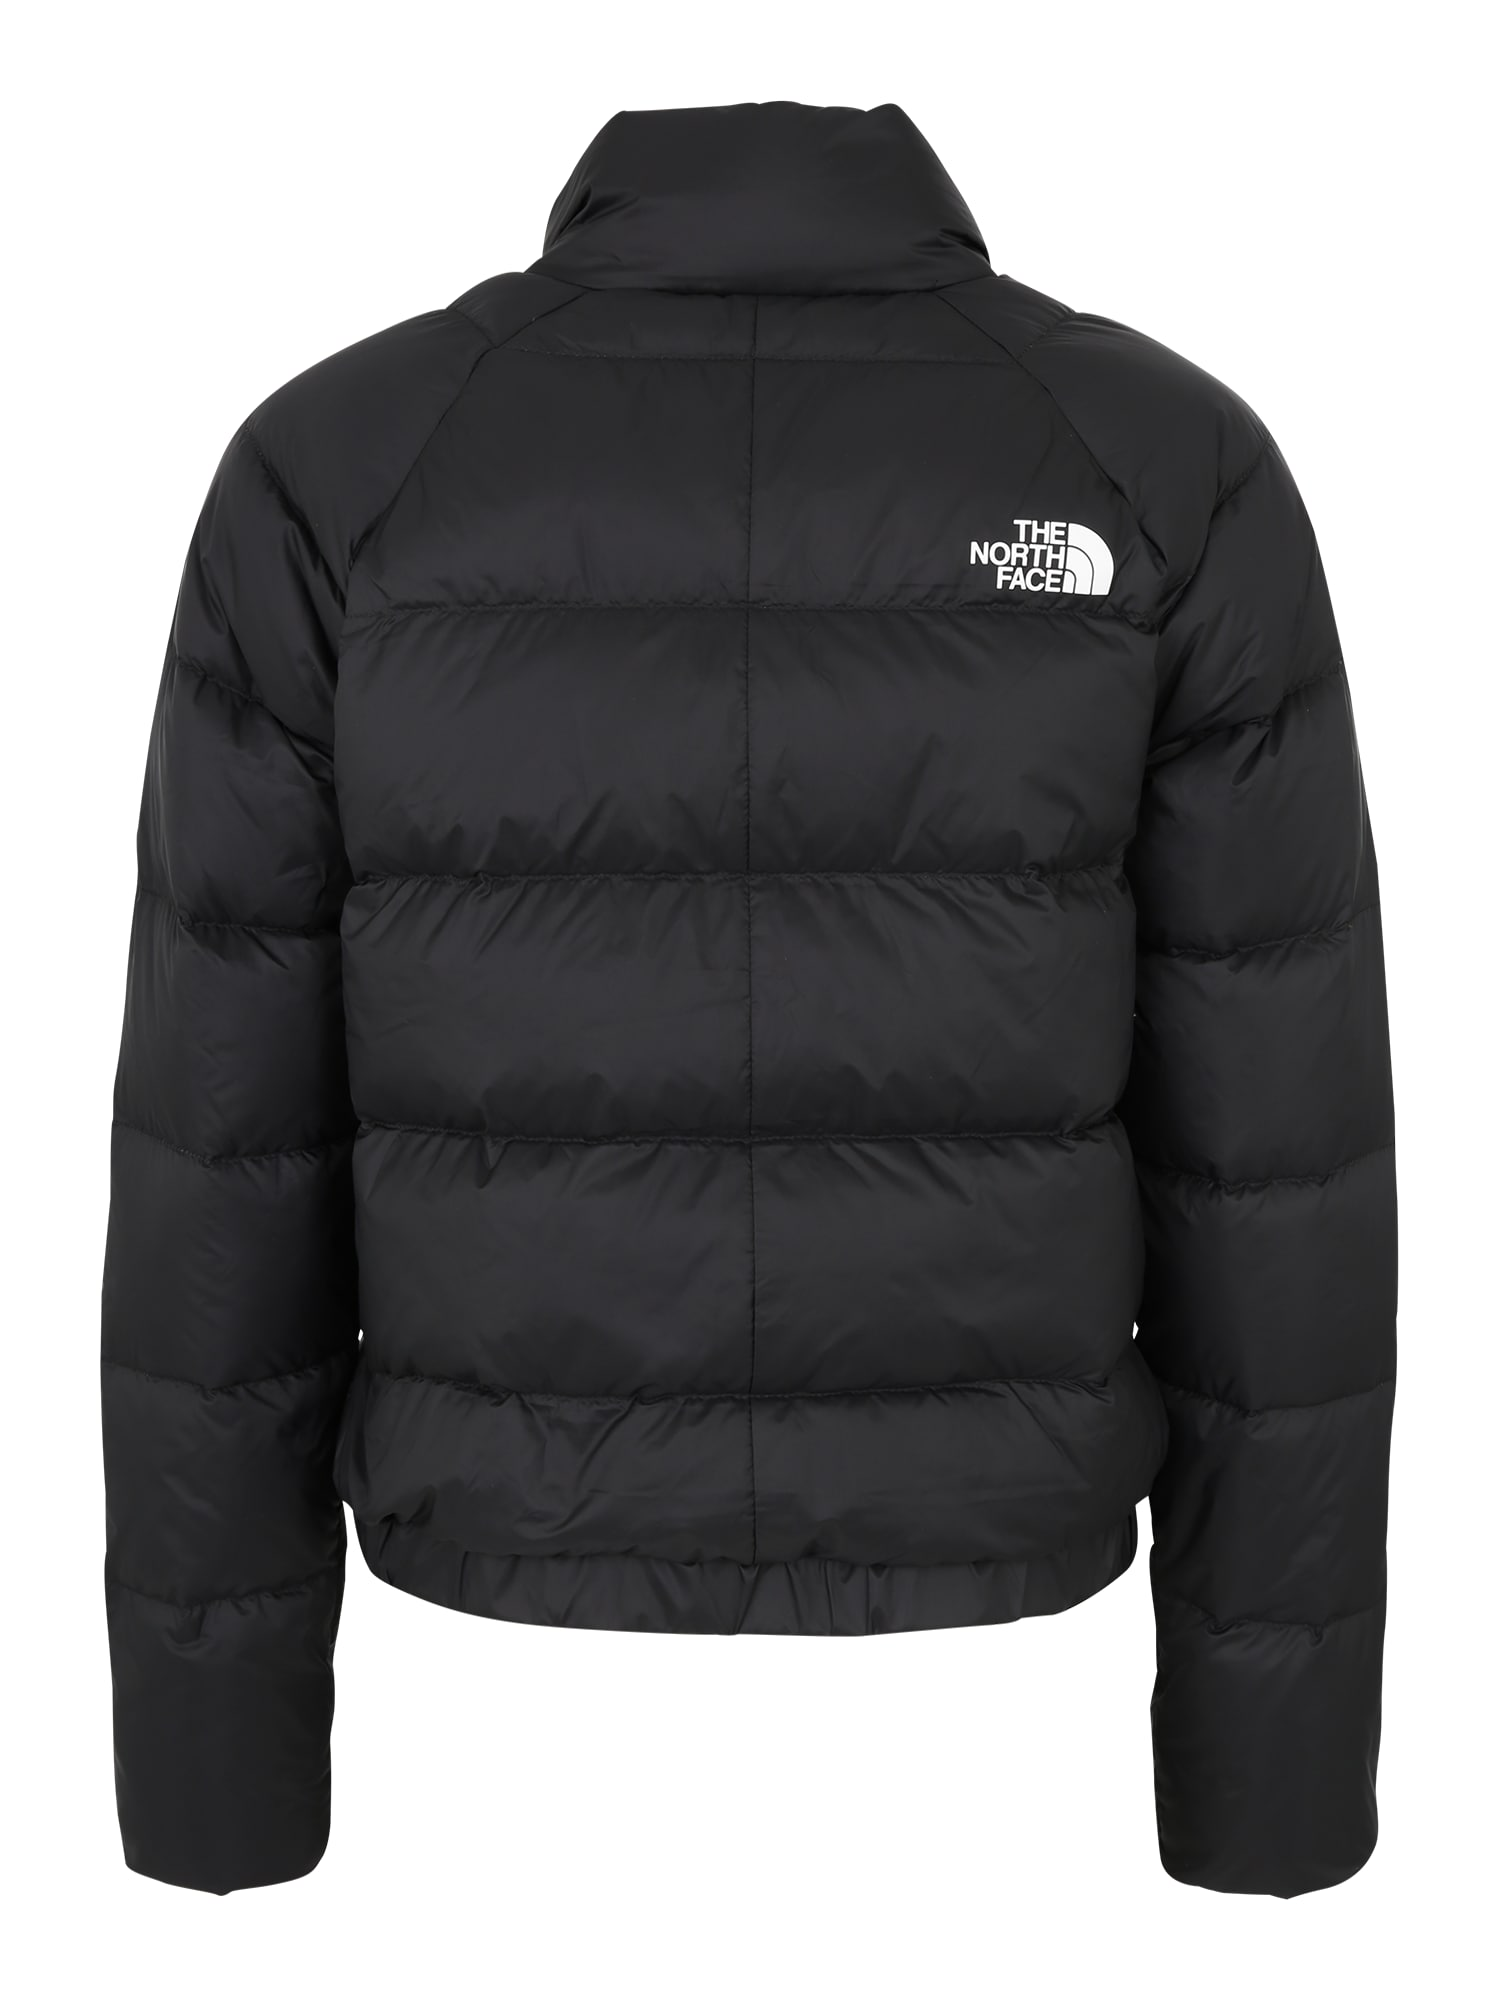 the north face - Daunenjacke 'Hyalite'